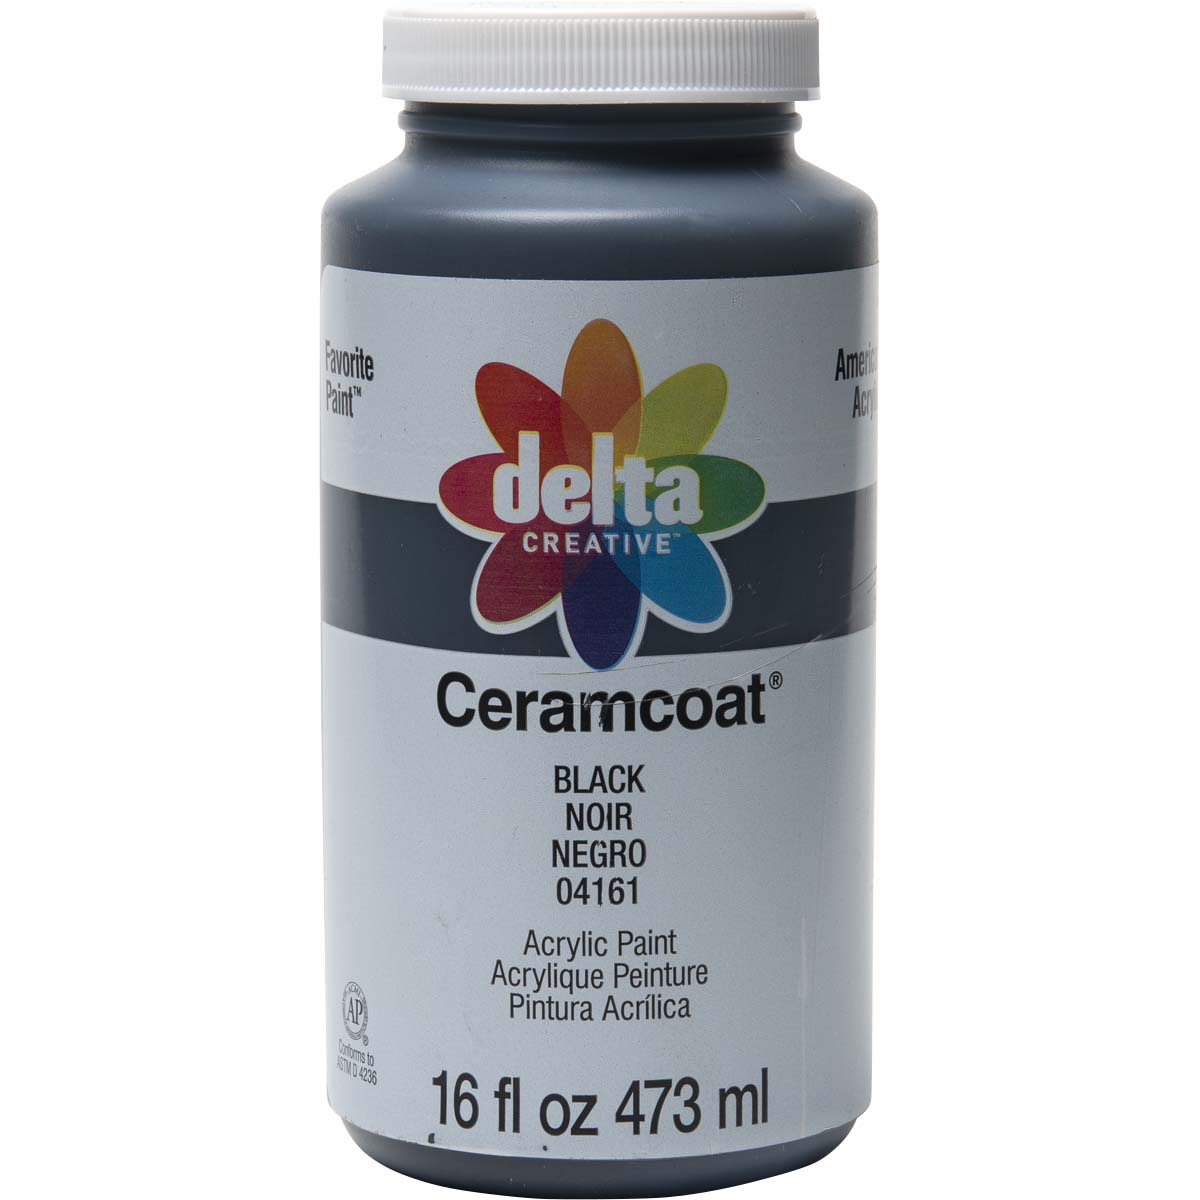 Delta Ceramcoat ® Acrylic Paint - Black, 16 oz. - 04161